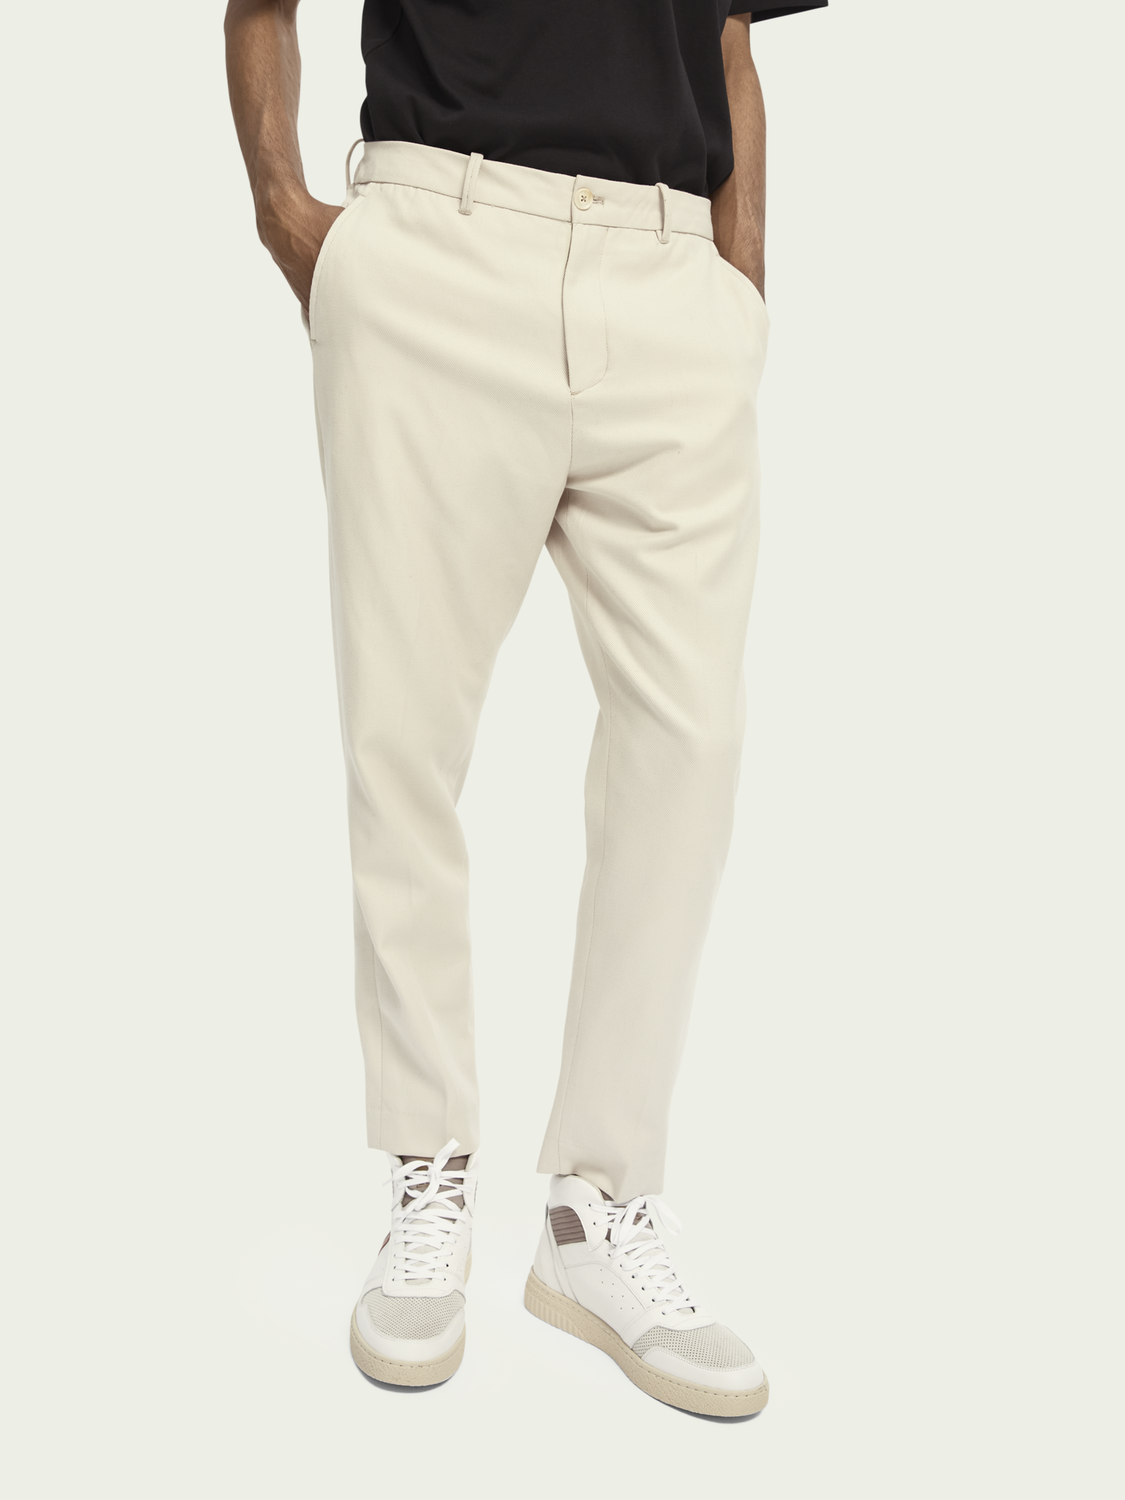 Heren FAVE – Relaxed chino van wol-katoenmix   Tapered fit